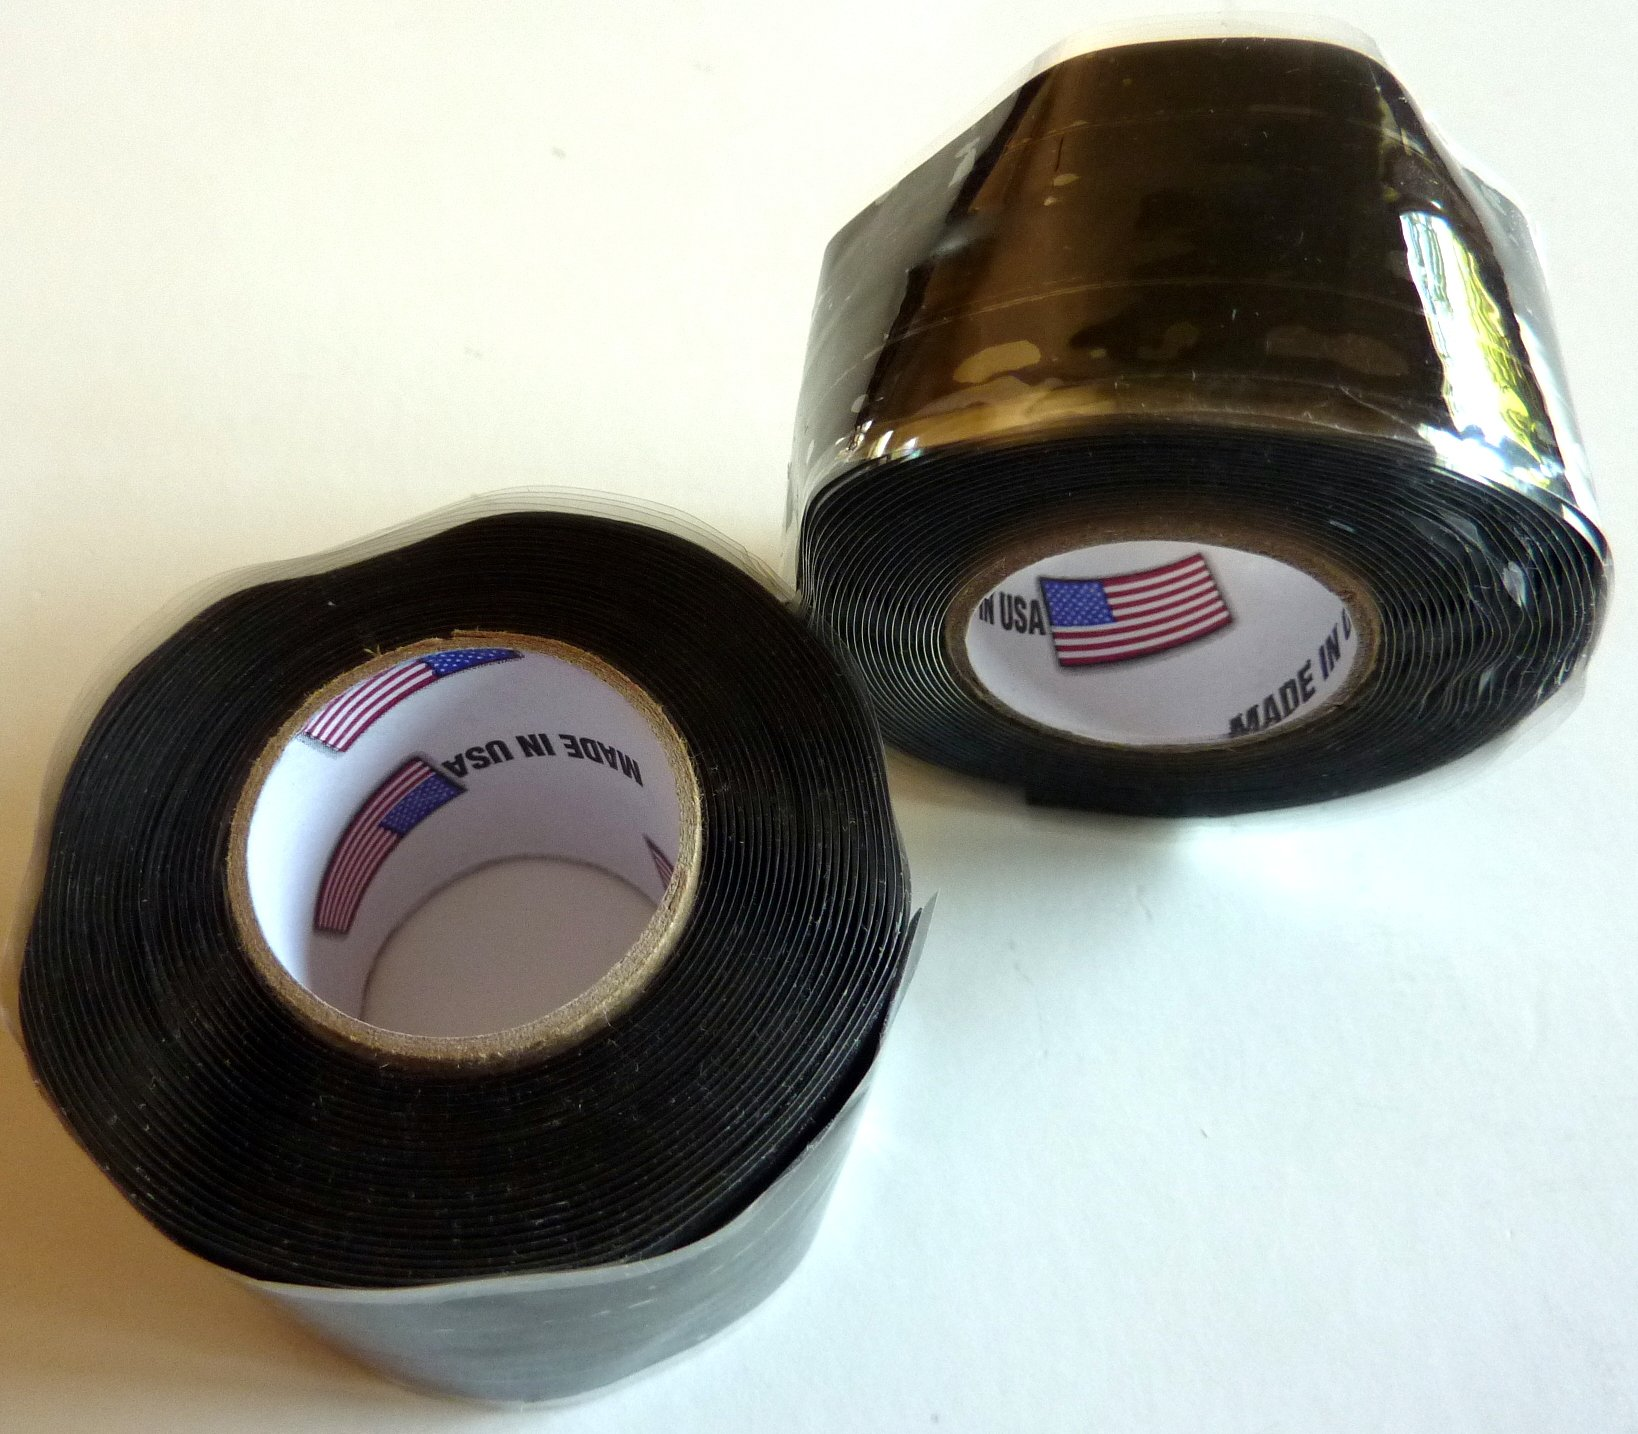 2X Philmore Self-Fusing Black Silicone Rubber Emergency Repair Tape Seals Insulates Waterproofs, 1'' x 10ft